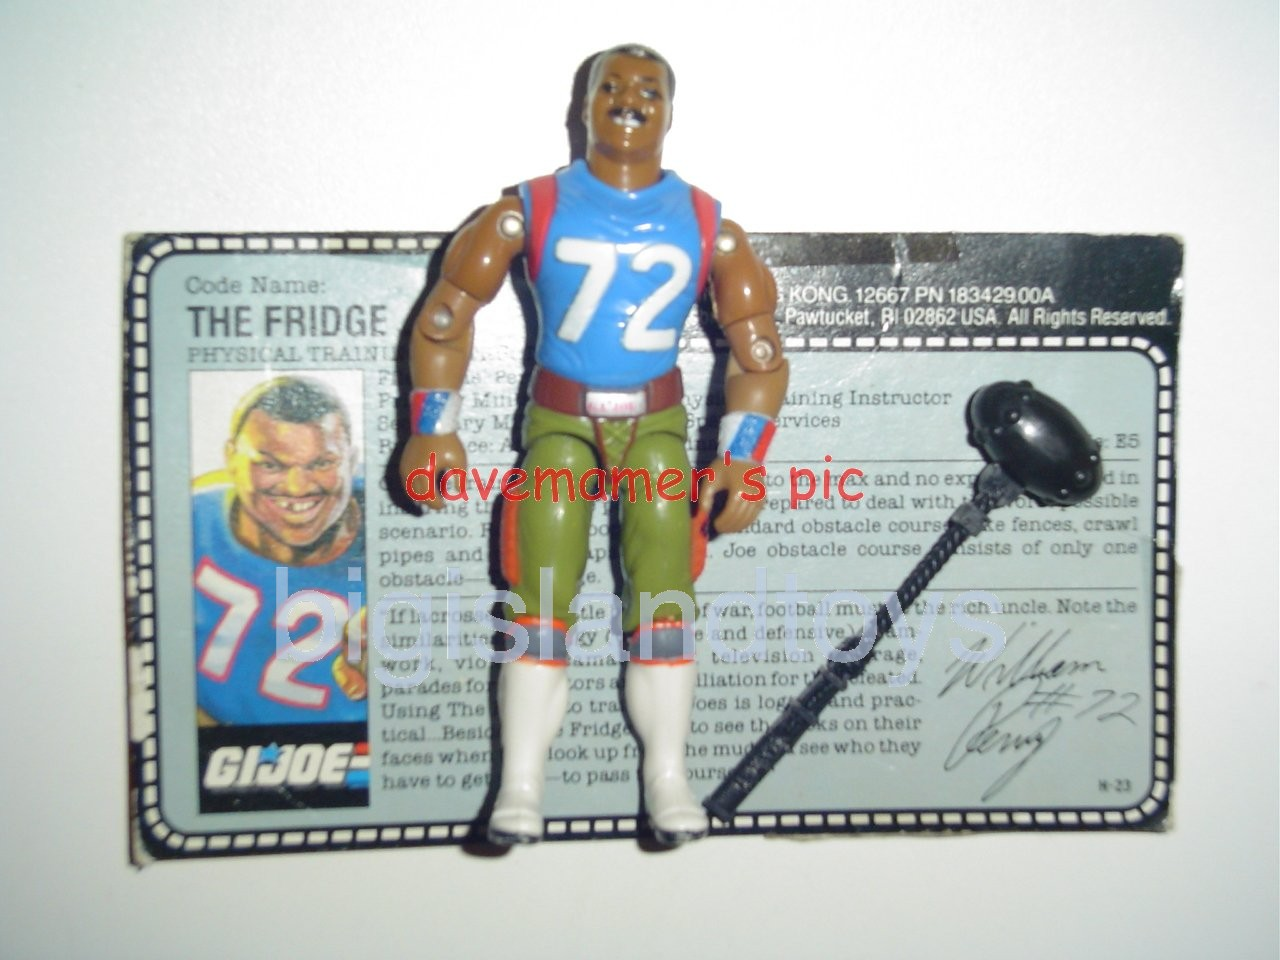 GI Joe 1987 Figures   The Fridge William Perry